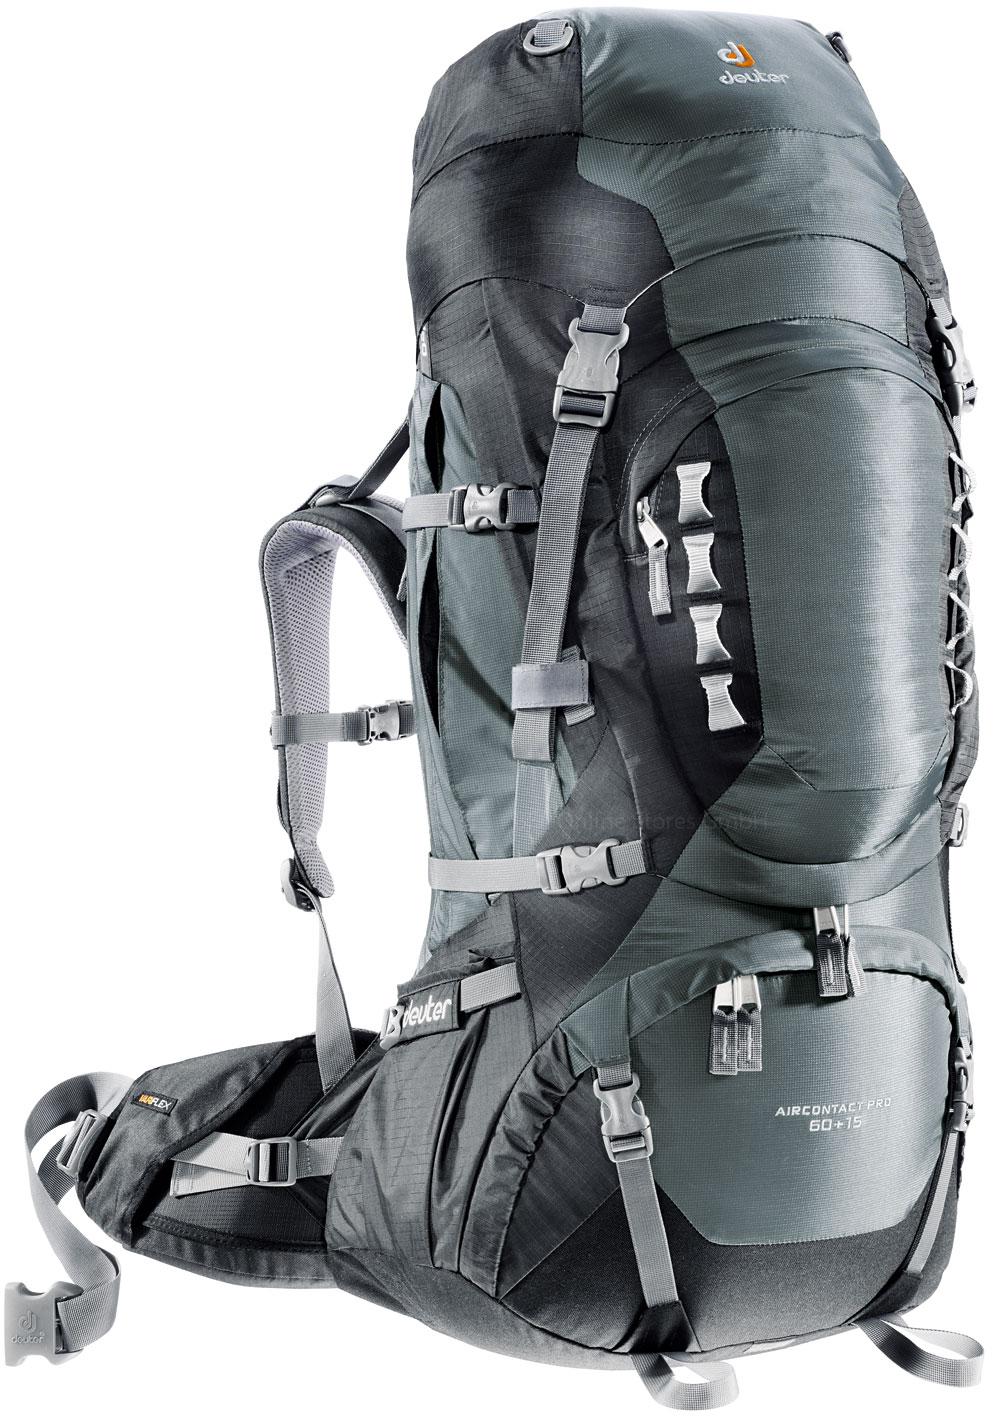 Deuter Aircontact PRO 60 + 15 granite-black-30